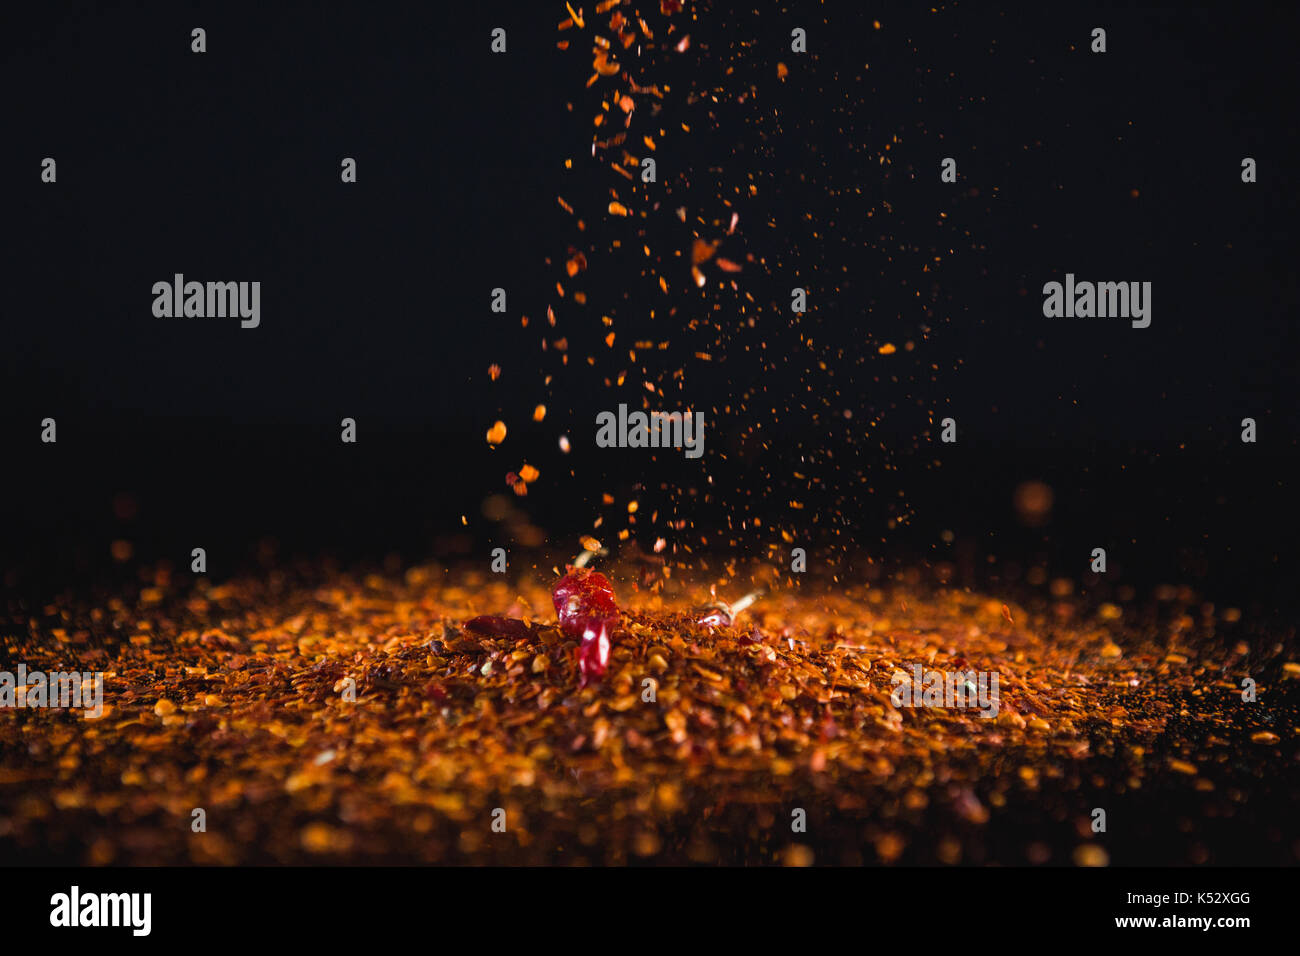 Close-up of red chilli flakes against black background - Stock Image